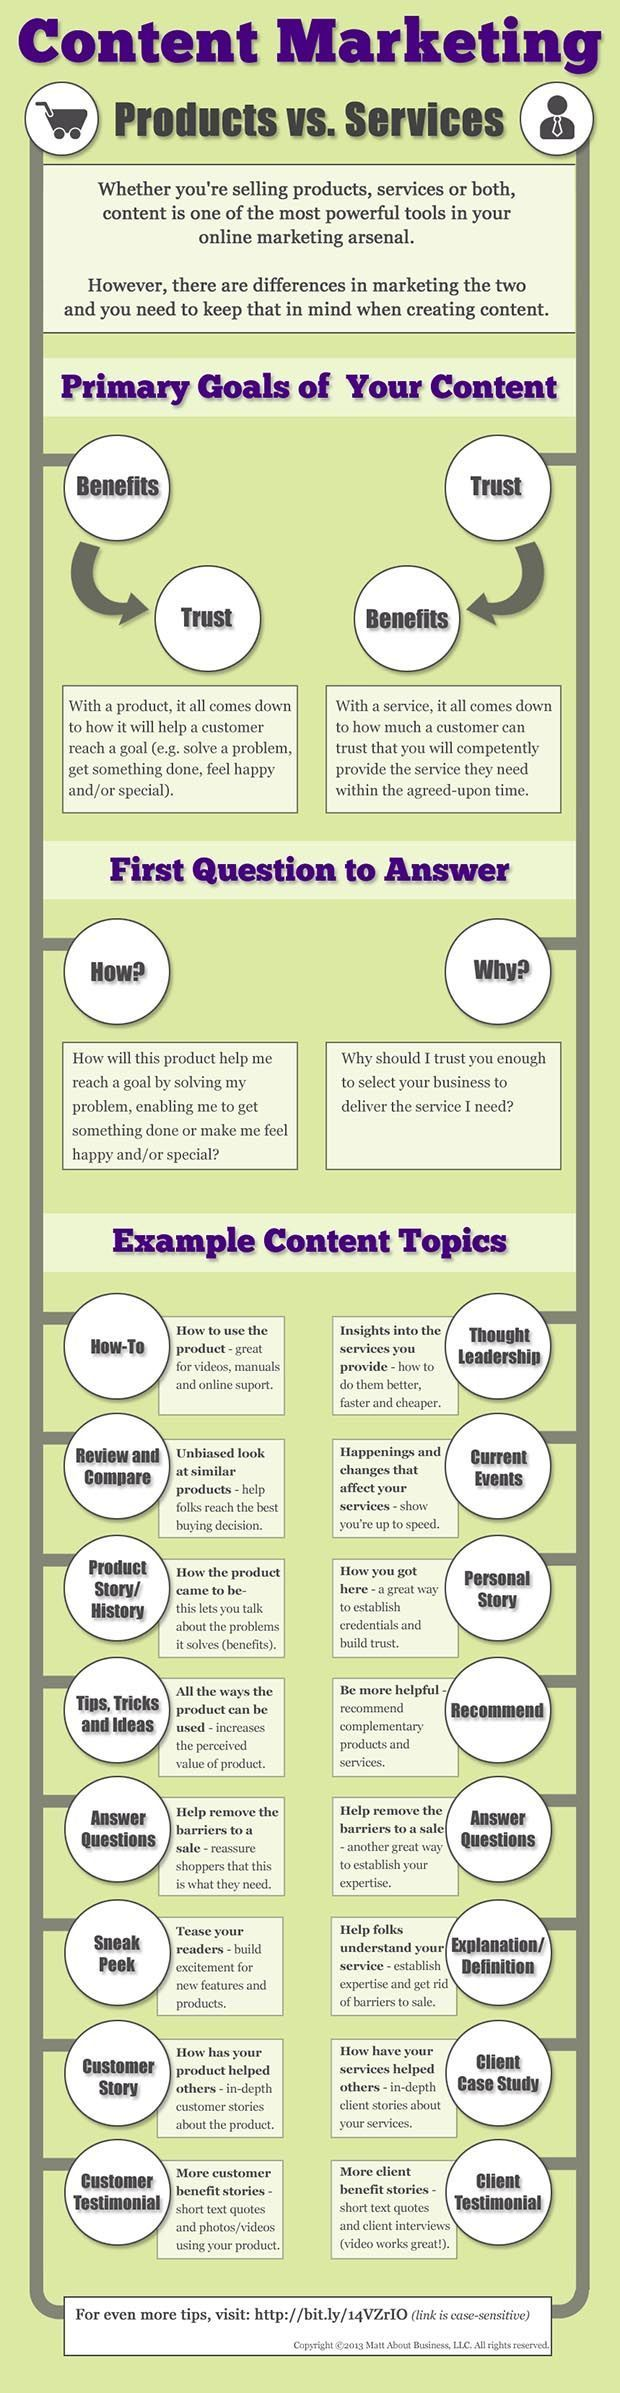 Small business marketing tips: Find the best content marketing ideas, whether you sell products or services. Pin this insightful infographic as a valuable source of ideas for YOUR business!